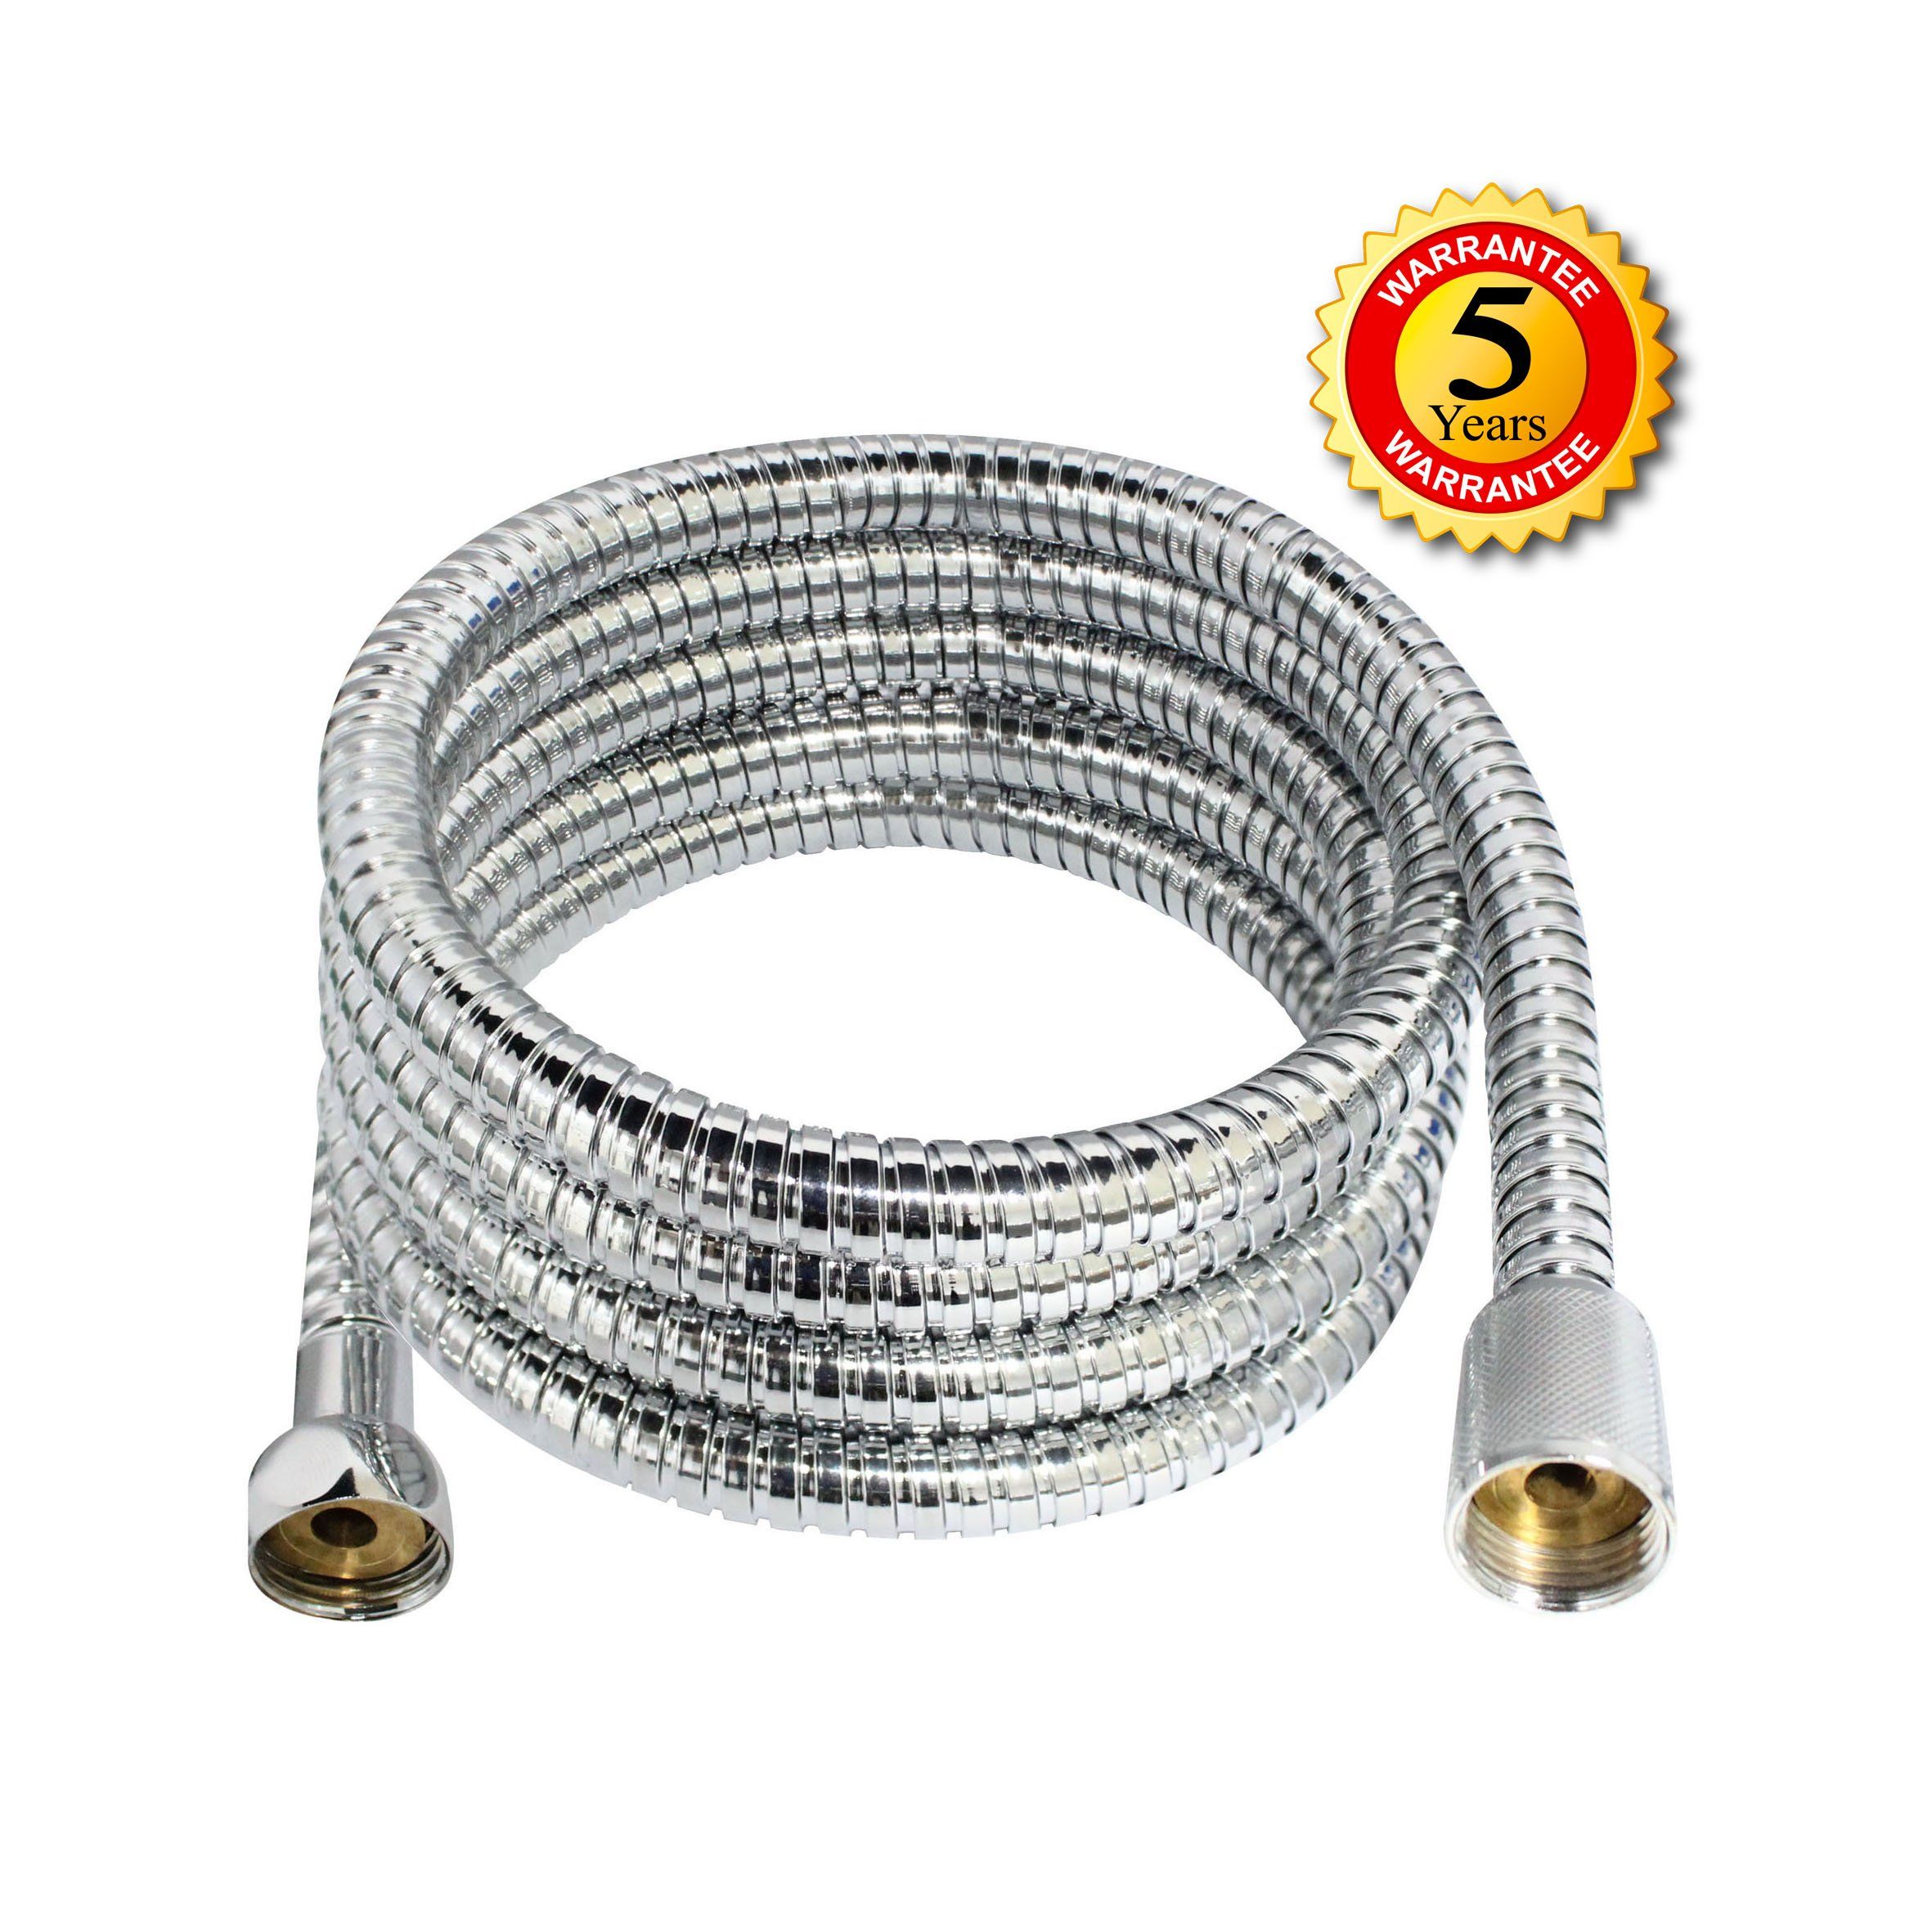 MODONA 72'' (6 Feet) Stainless Steel Replacement Shower Hose with BRASS Fittings - 5 Year Warrantee